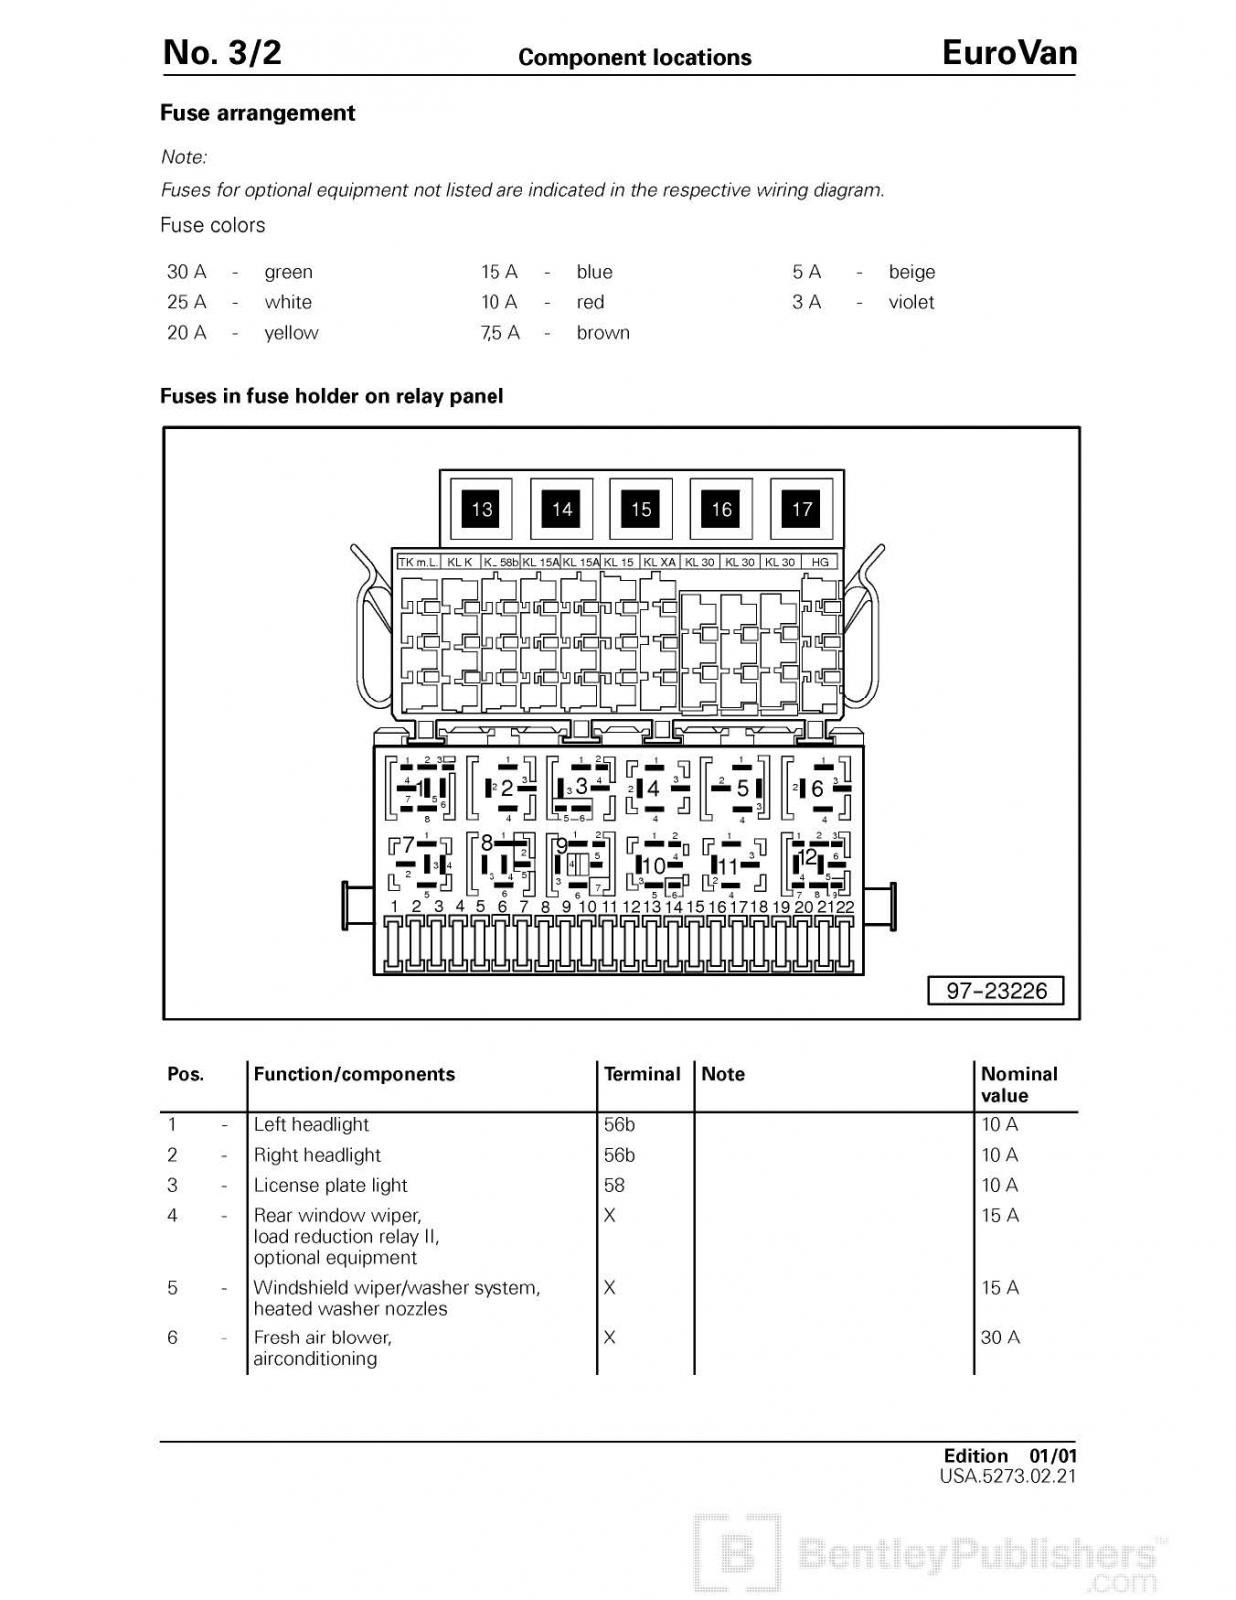 Eurovan Fuse Panel Diagram Not Lossing Wiring Diagram \u2022 1998 VW Passat  Fuse Box Diagram 2000 Vw Eurovan Fuse Box Diagram